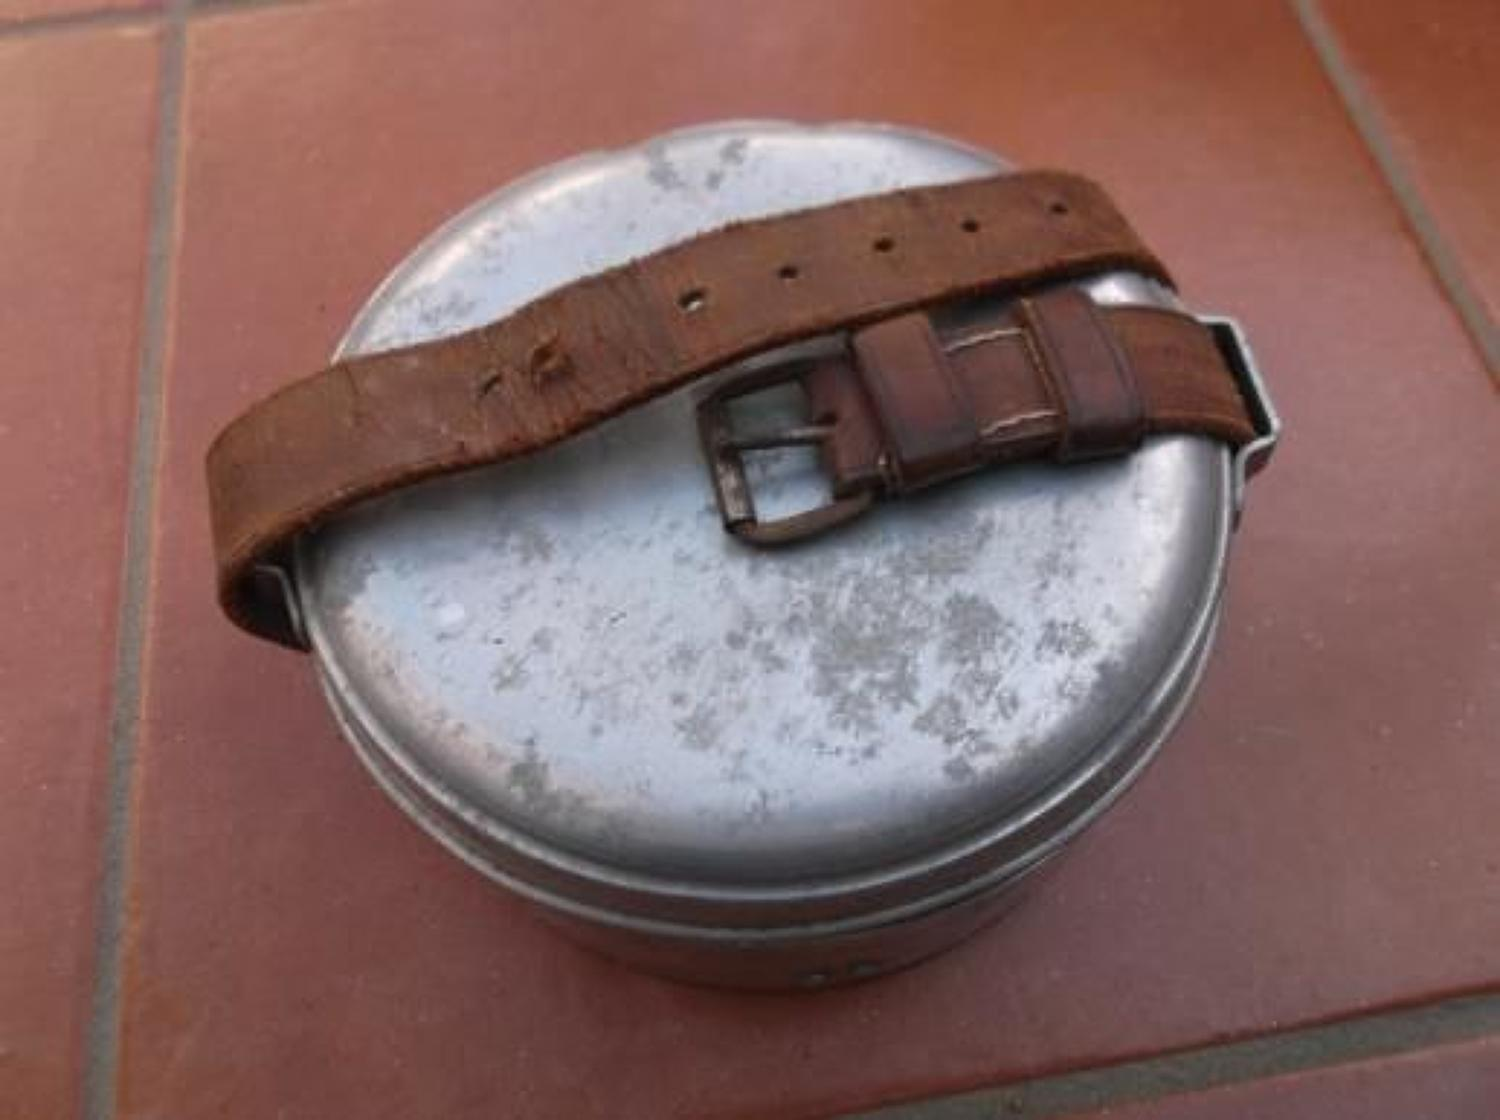 WW2 Private Purchase Officers Mess Tins.